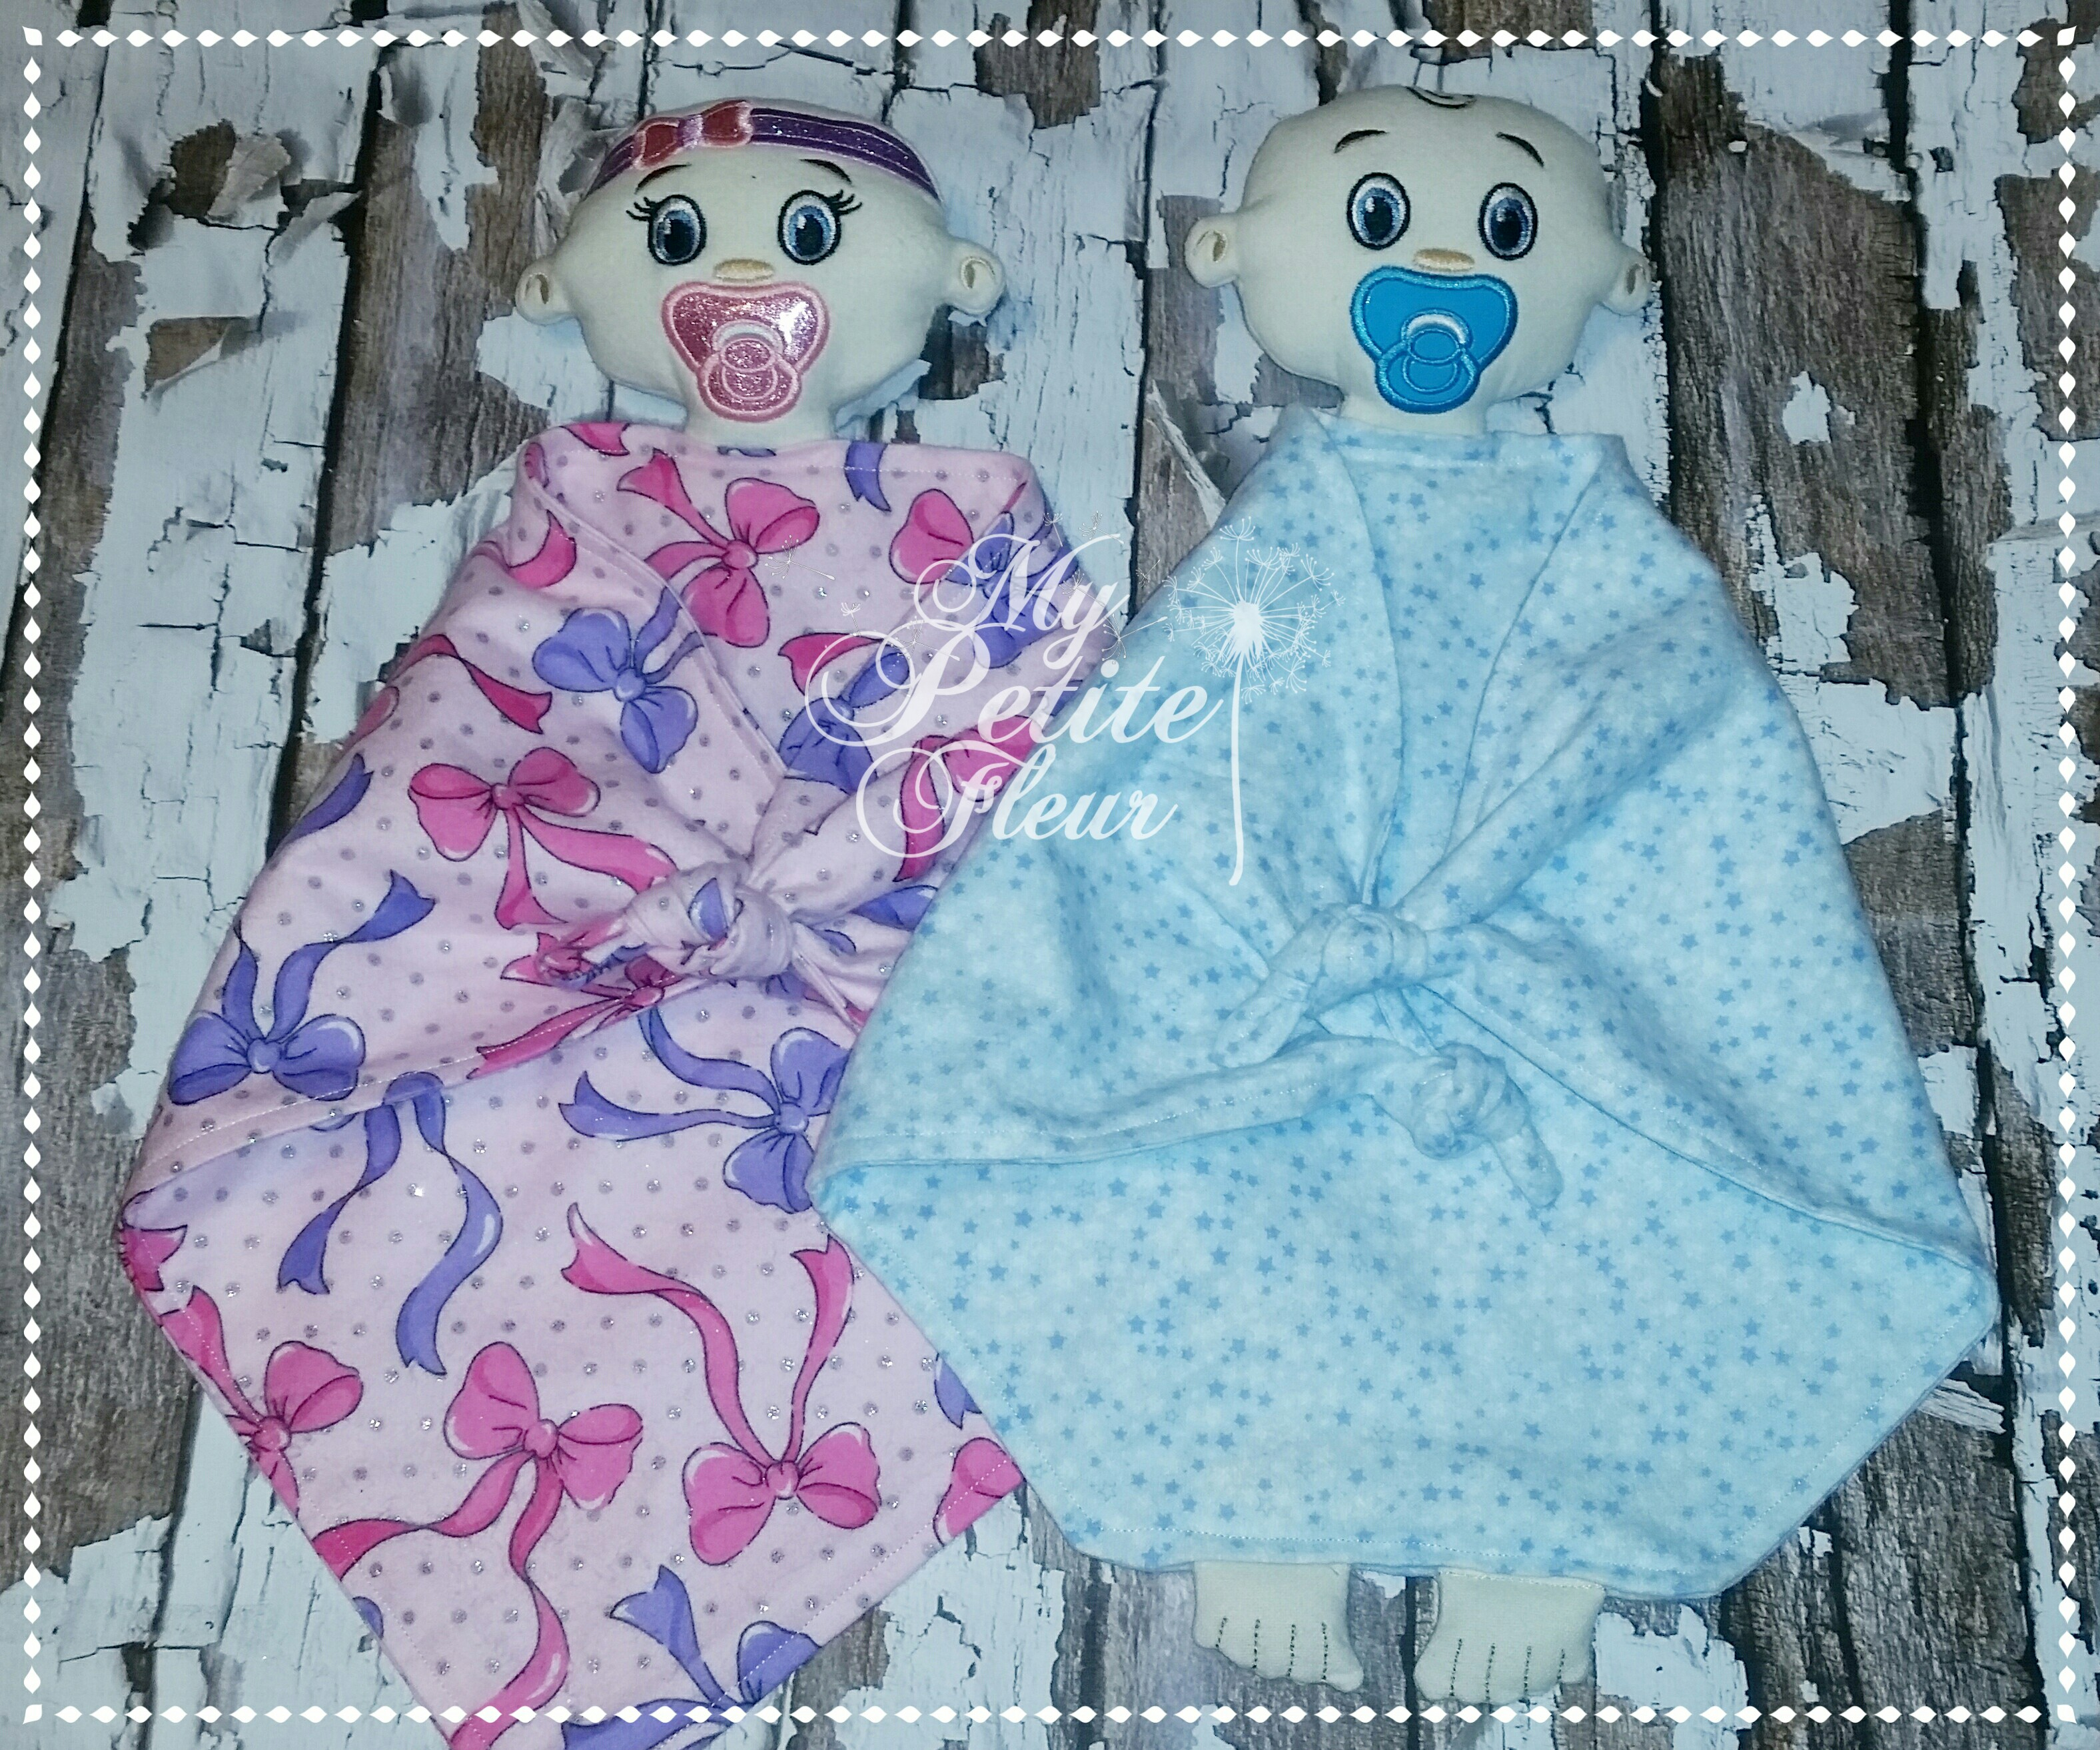 Baby boy and girl lovey two versions of eyes my petite